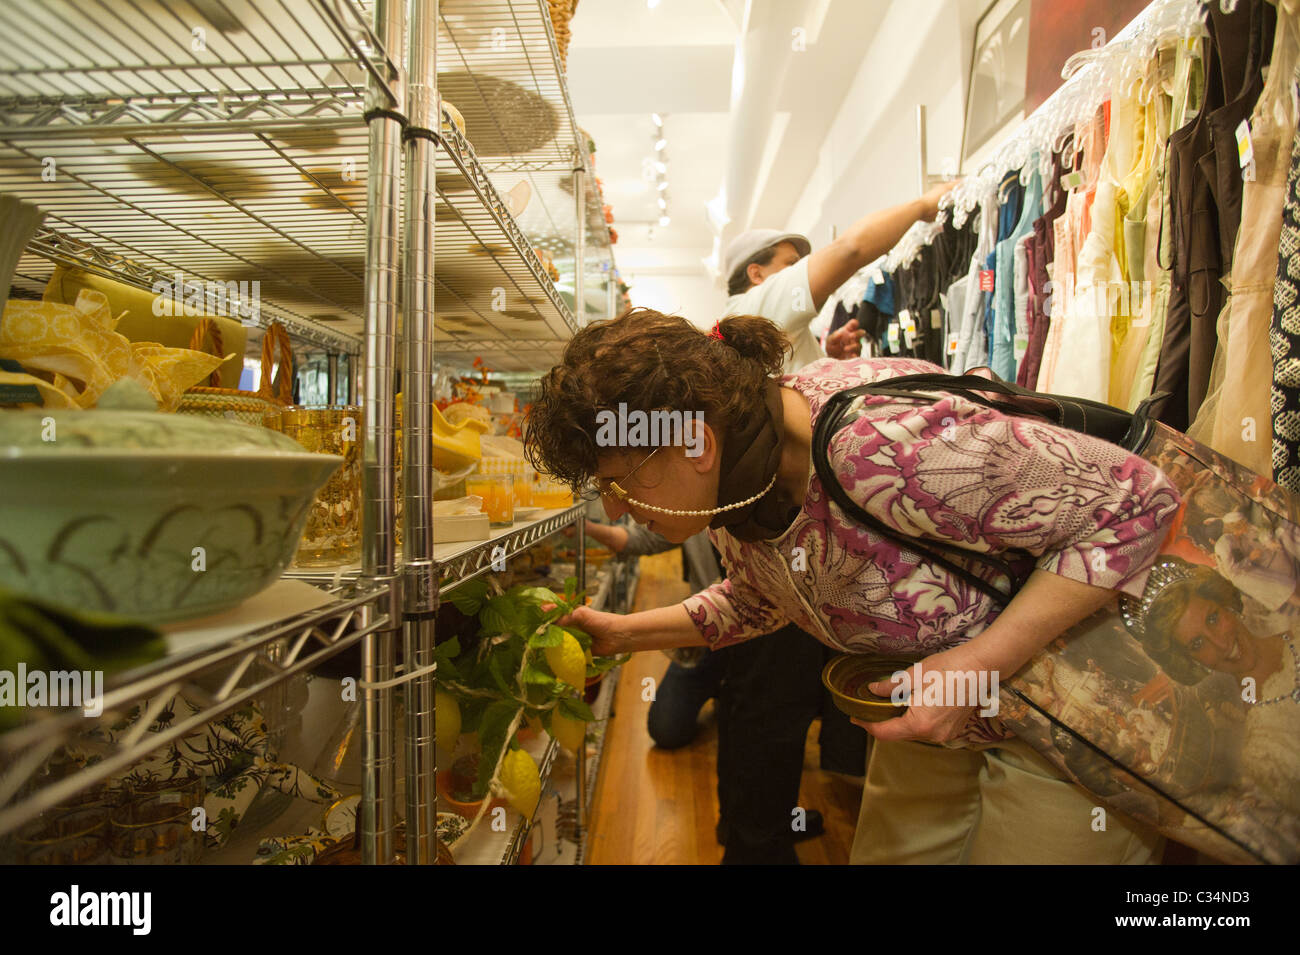 Goodwill In Tourism Stock Photos & Goodwill In Tourism Stock Images ...